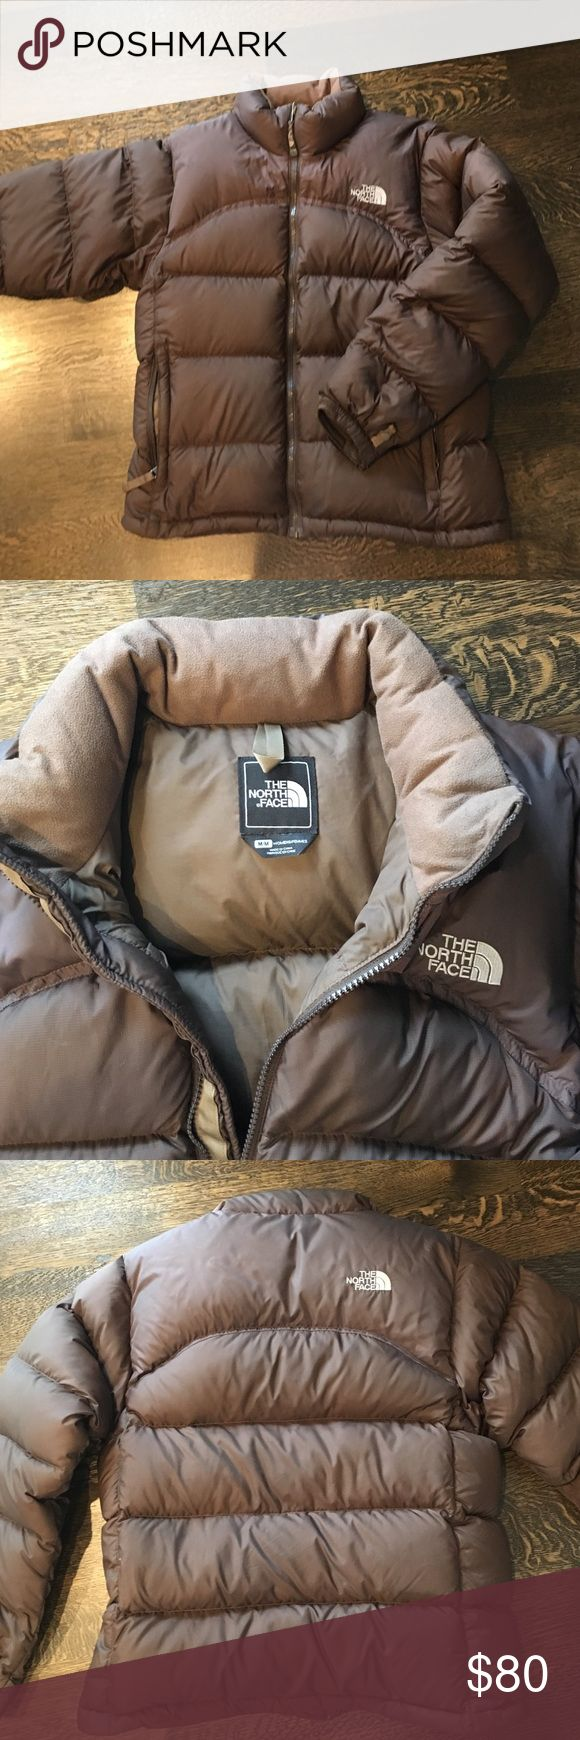 North face brown puffer jacket Very warm puffer jacket in brown by North Face North Face Jackets & Coats Puffers